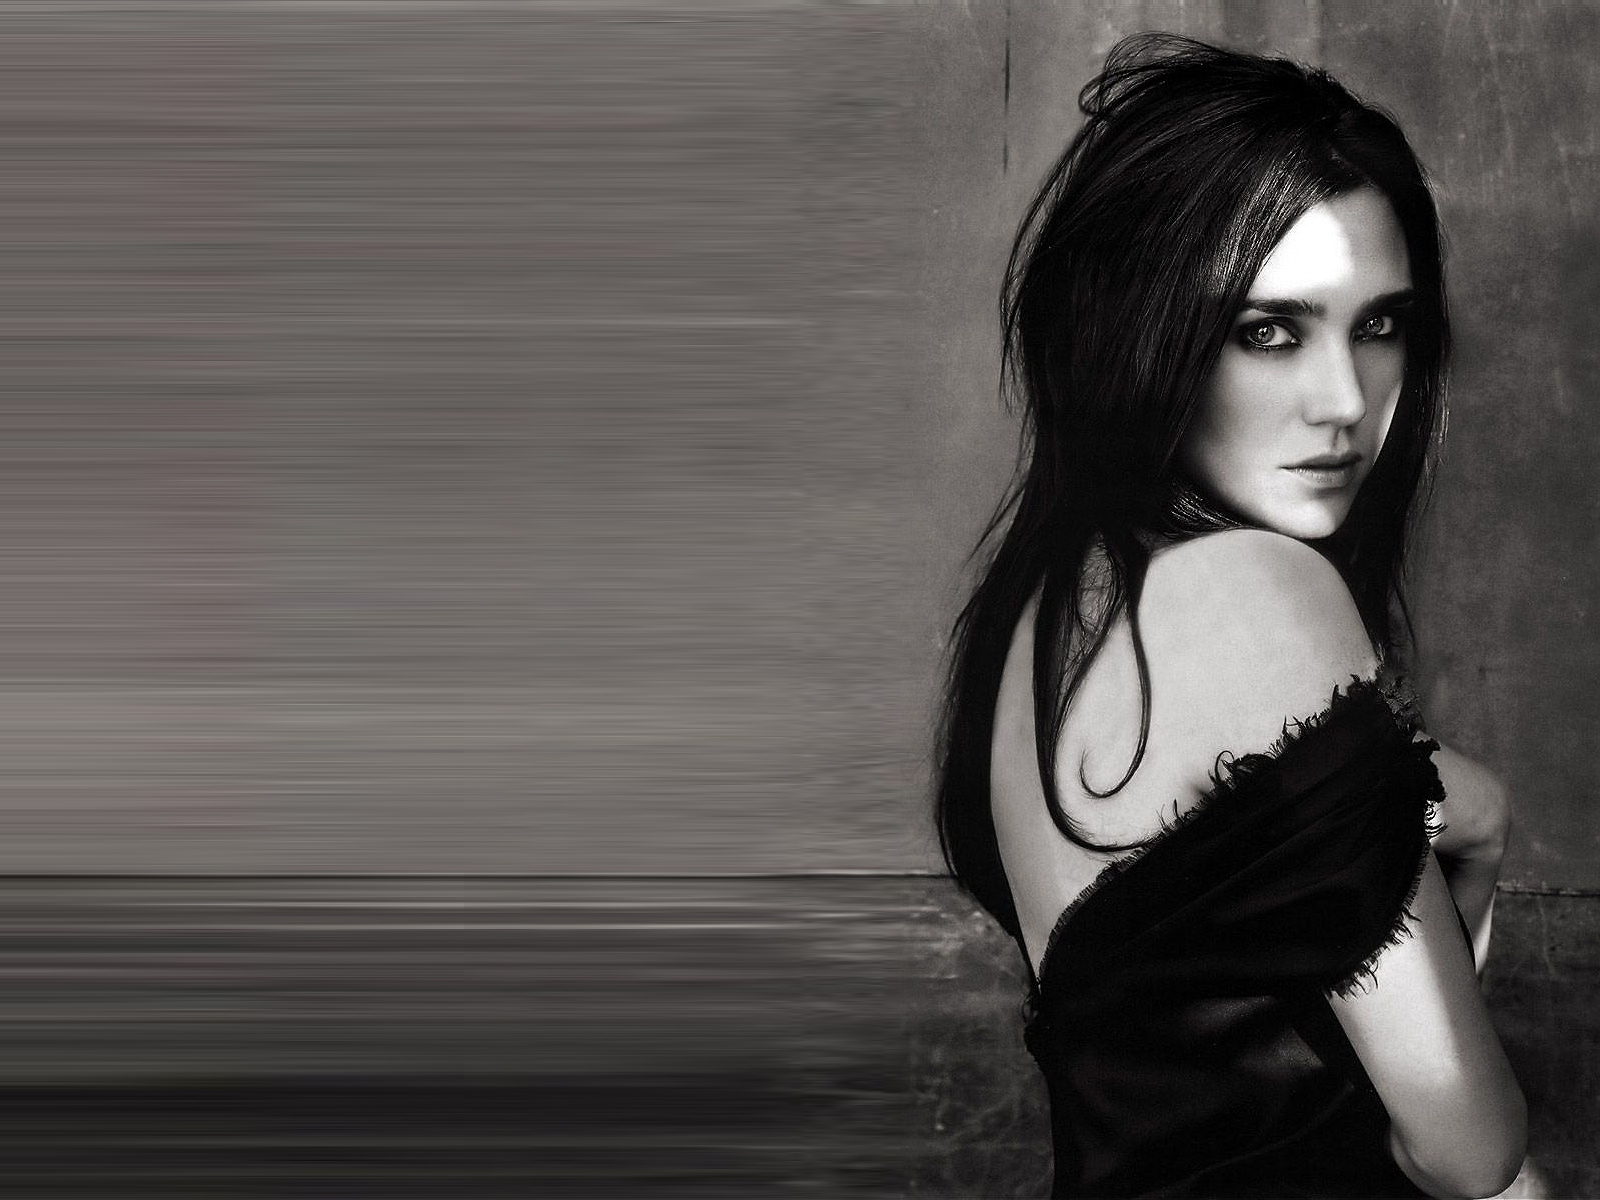 jennifer-connelly-wallpaper-3